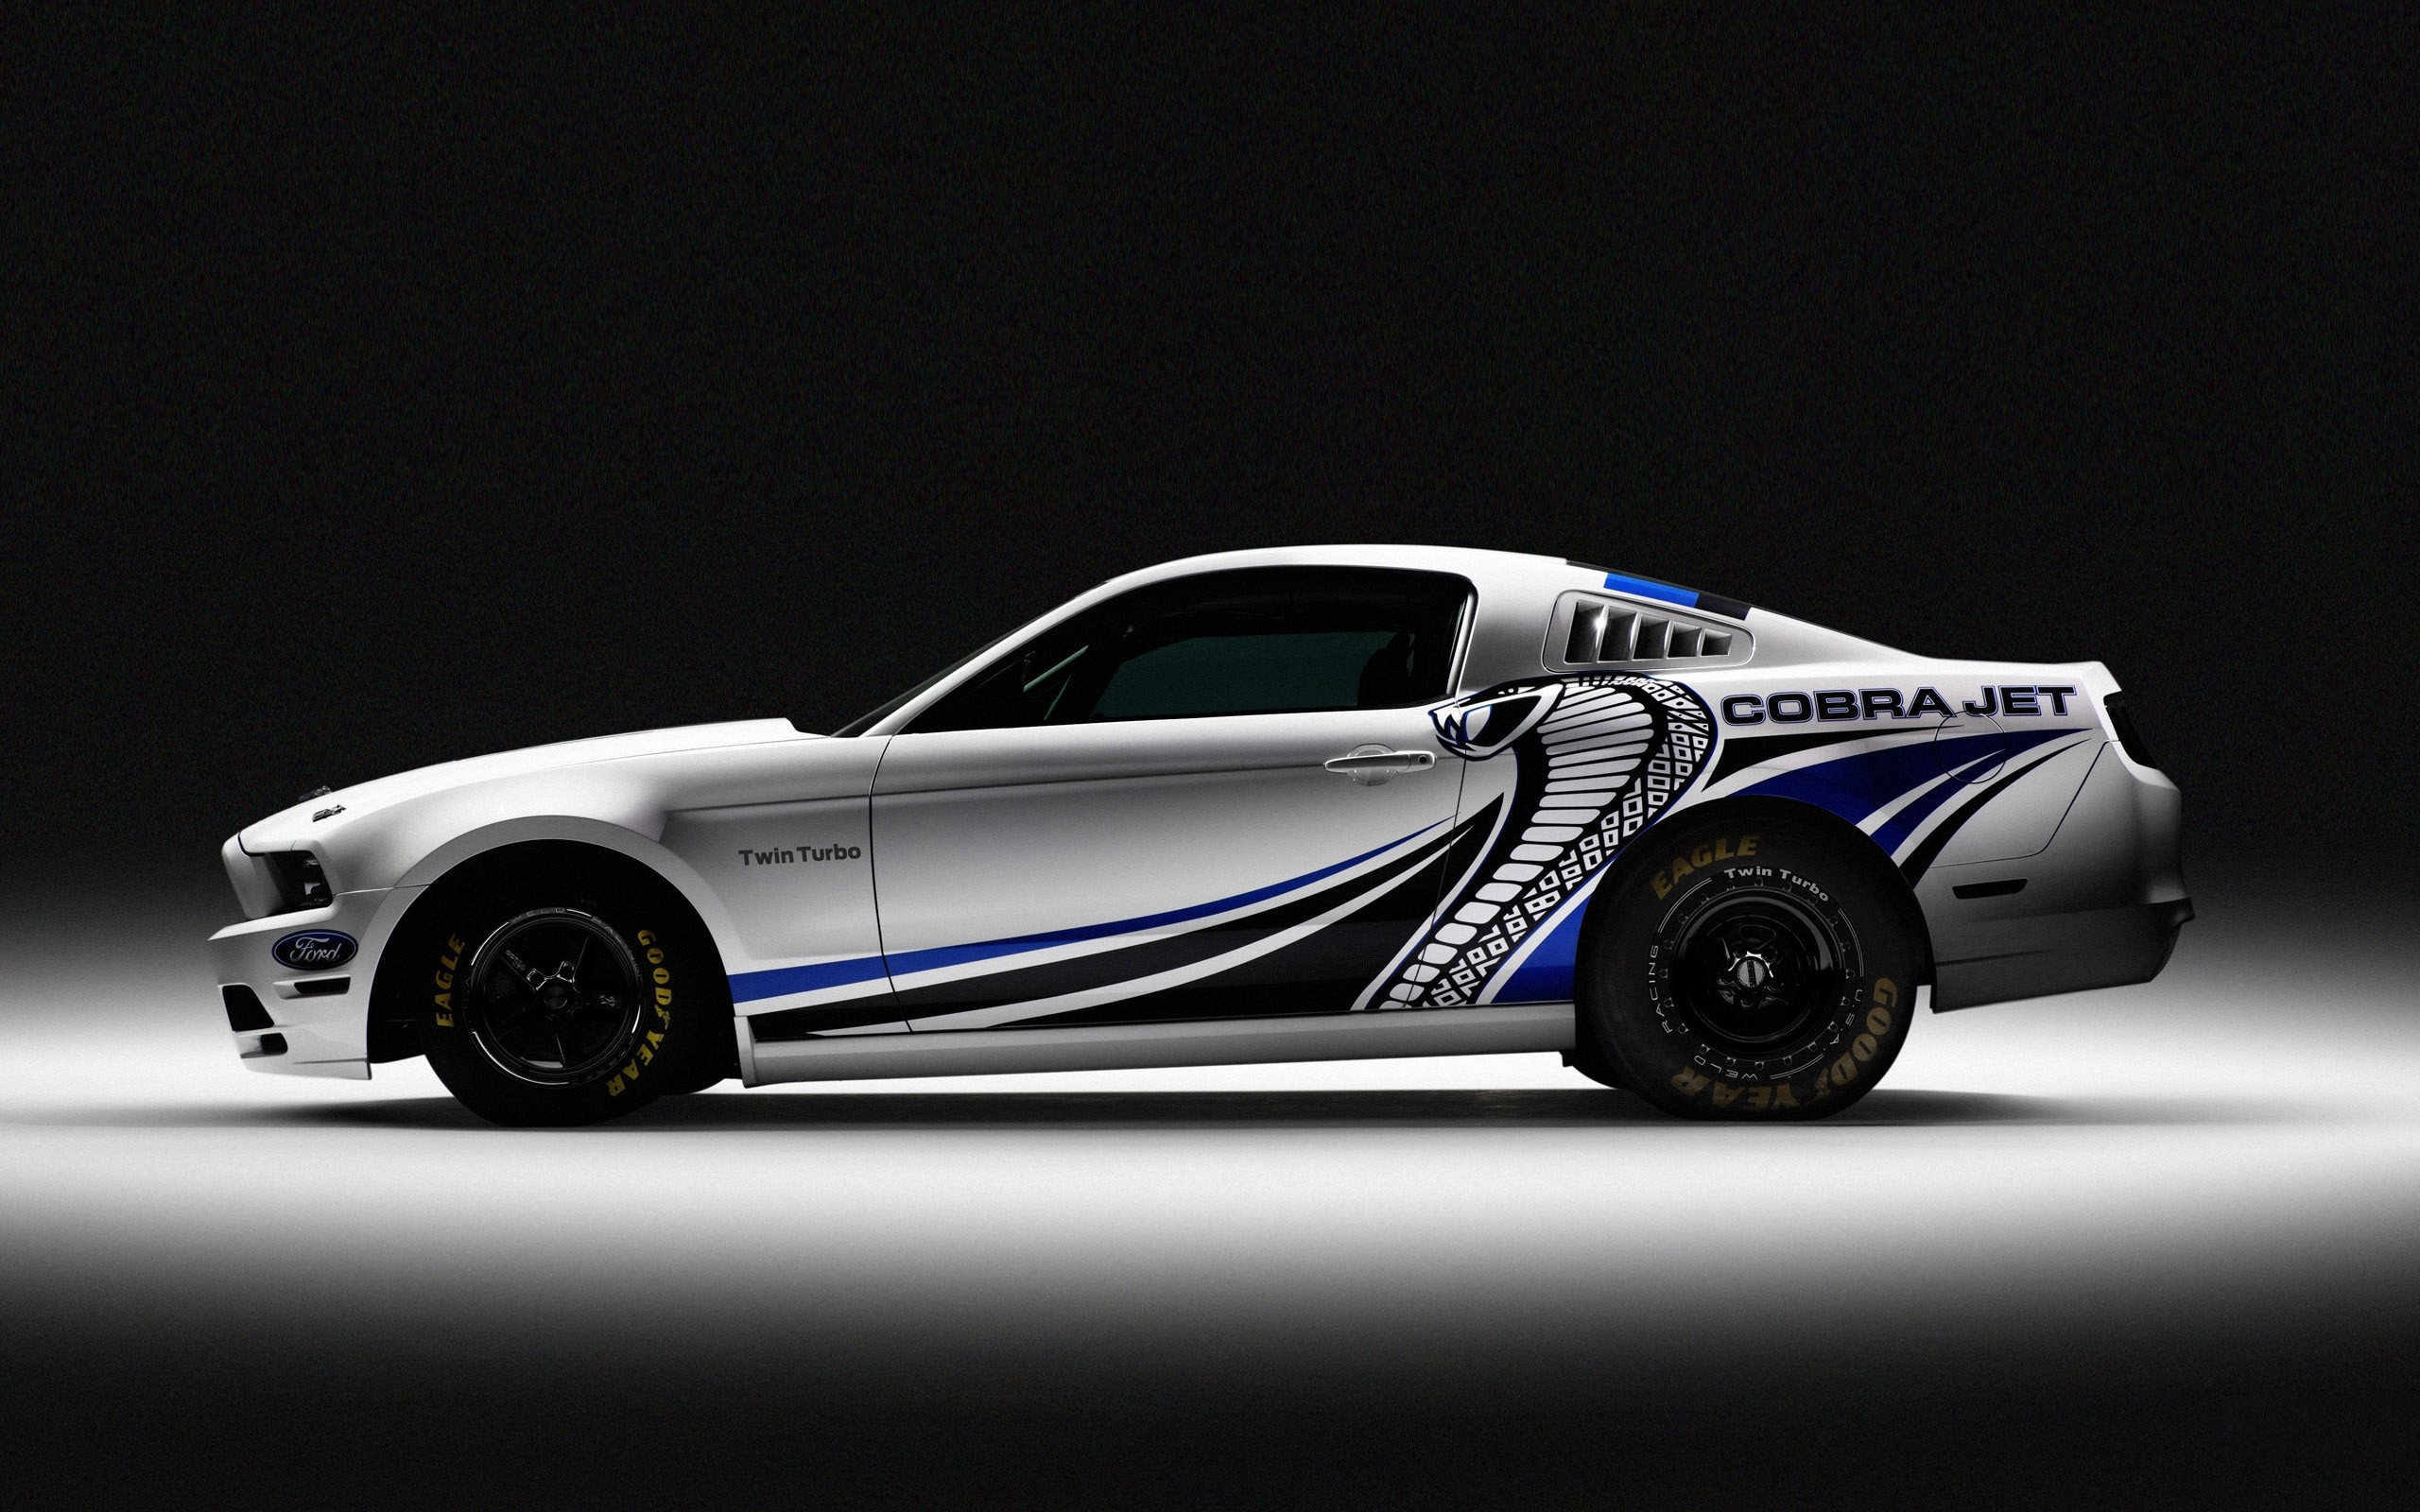 Ford Mustang Cobra Turbo Auto   Stock Photos Images HD 2560x1600